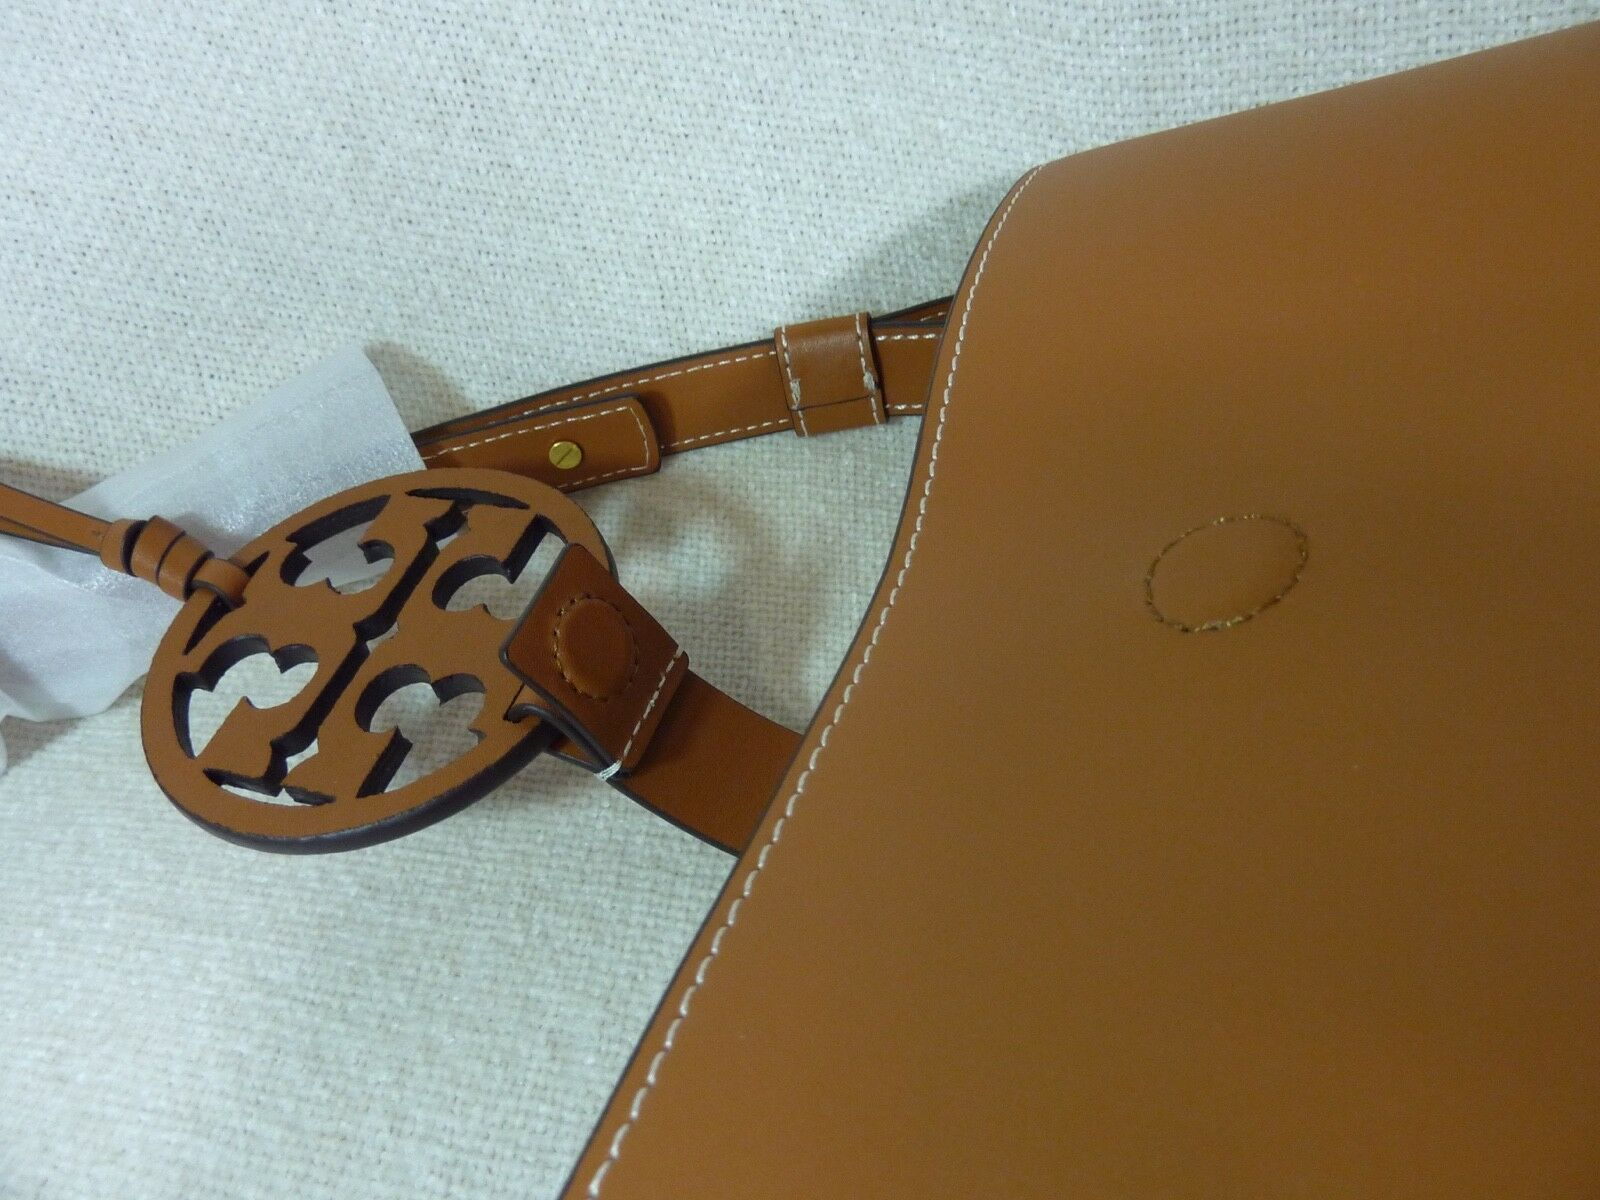 NWT Tory Burch Aged Camello Miller Hobo/Shoulder Tote $458 - Minor Imperfection image 10